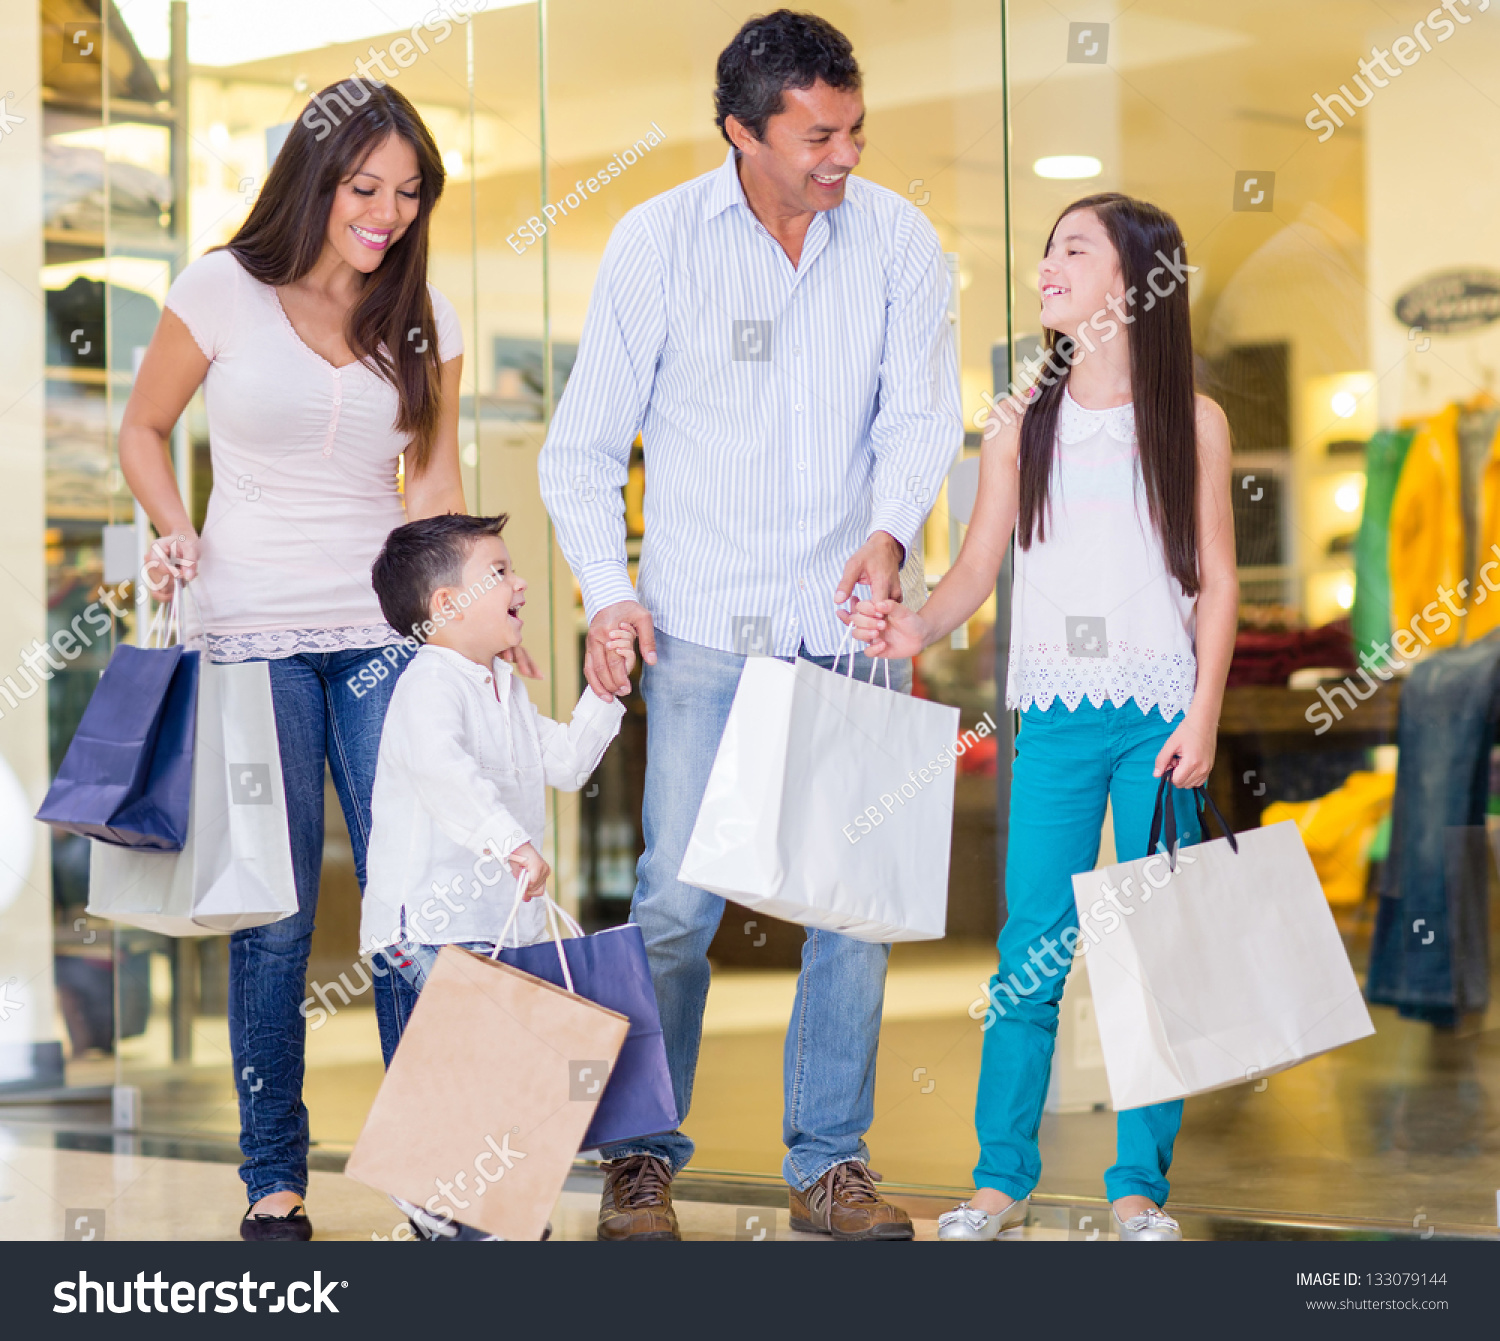 Family Shopping At The Mall And Looking Very Happy